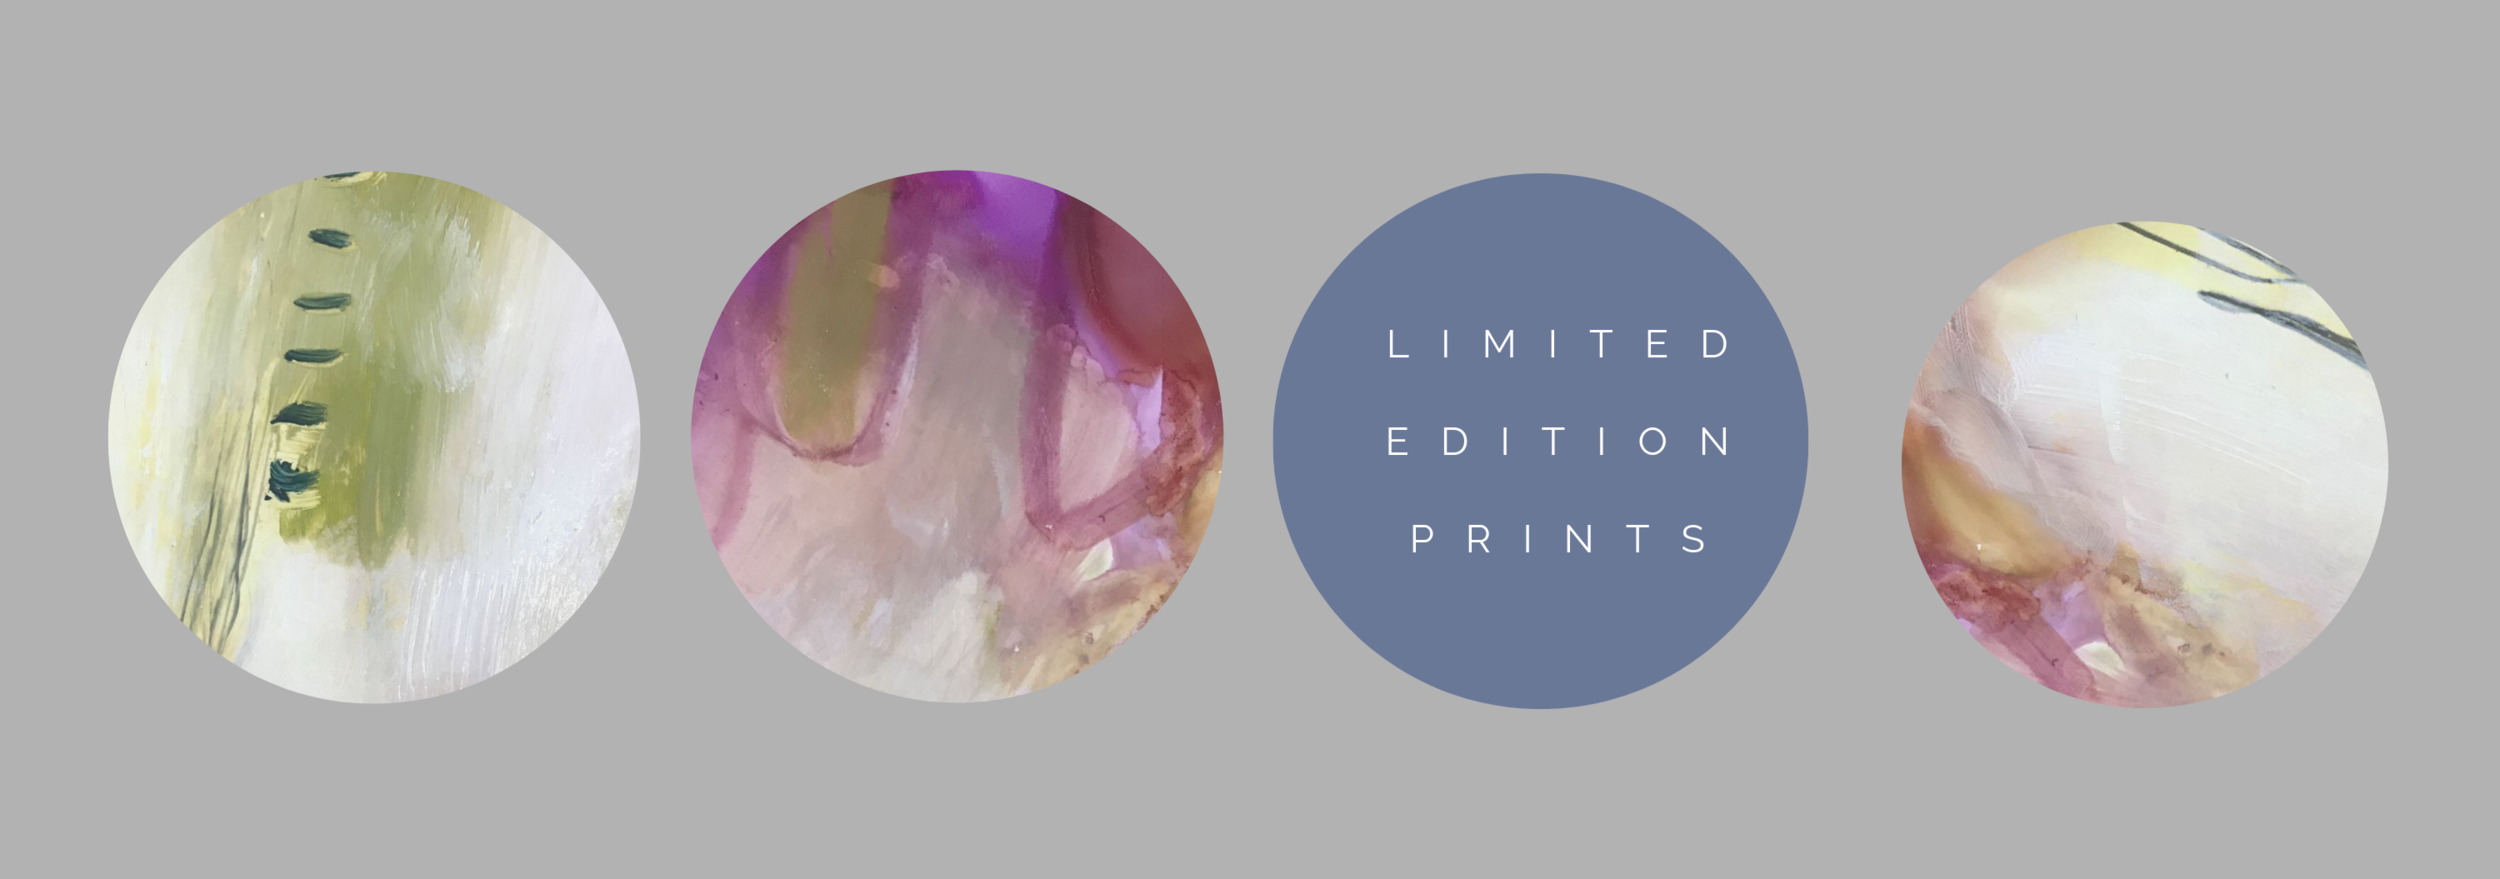 limited edition prints.png